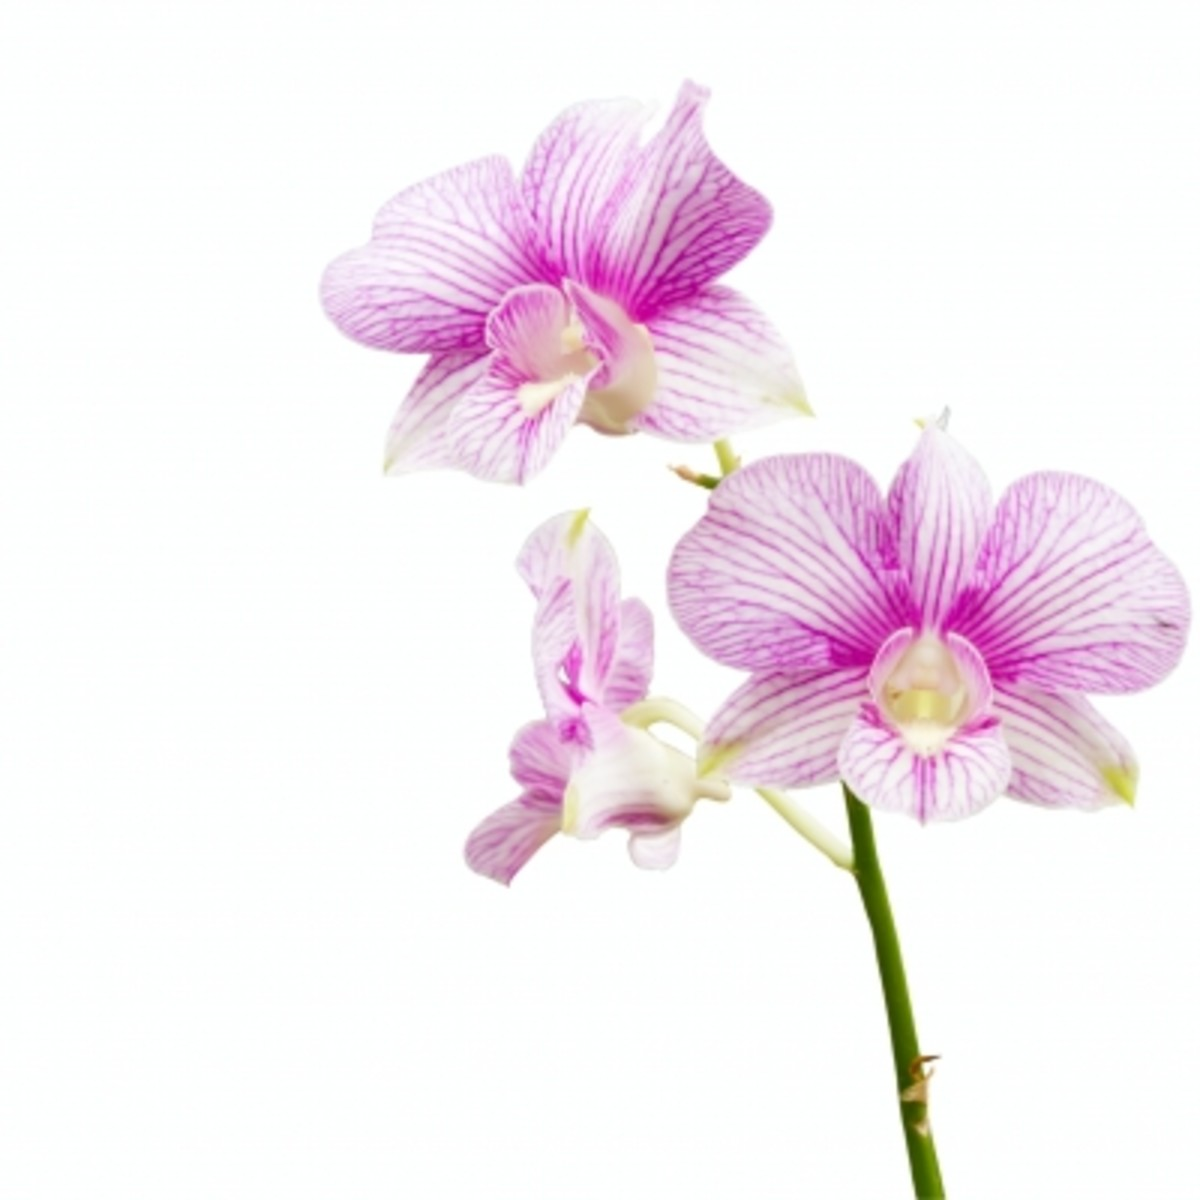 Growing orchid isn't that difficult, as long as you get the correct ratio of water and light.